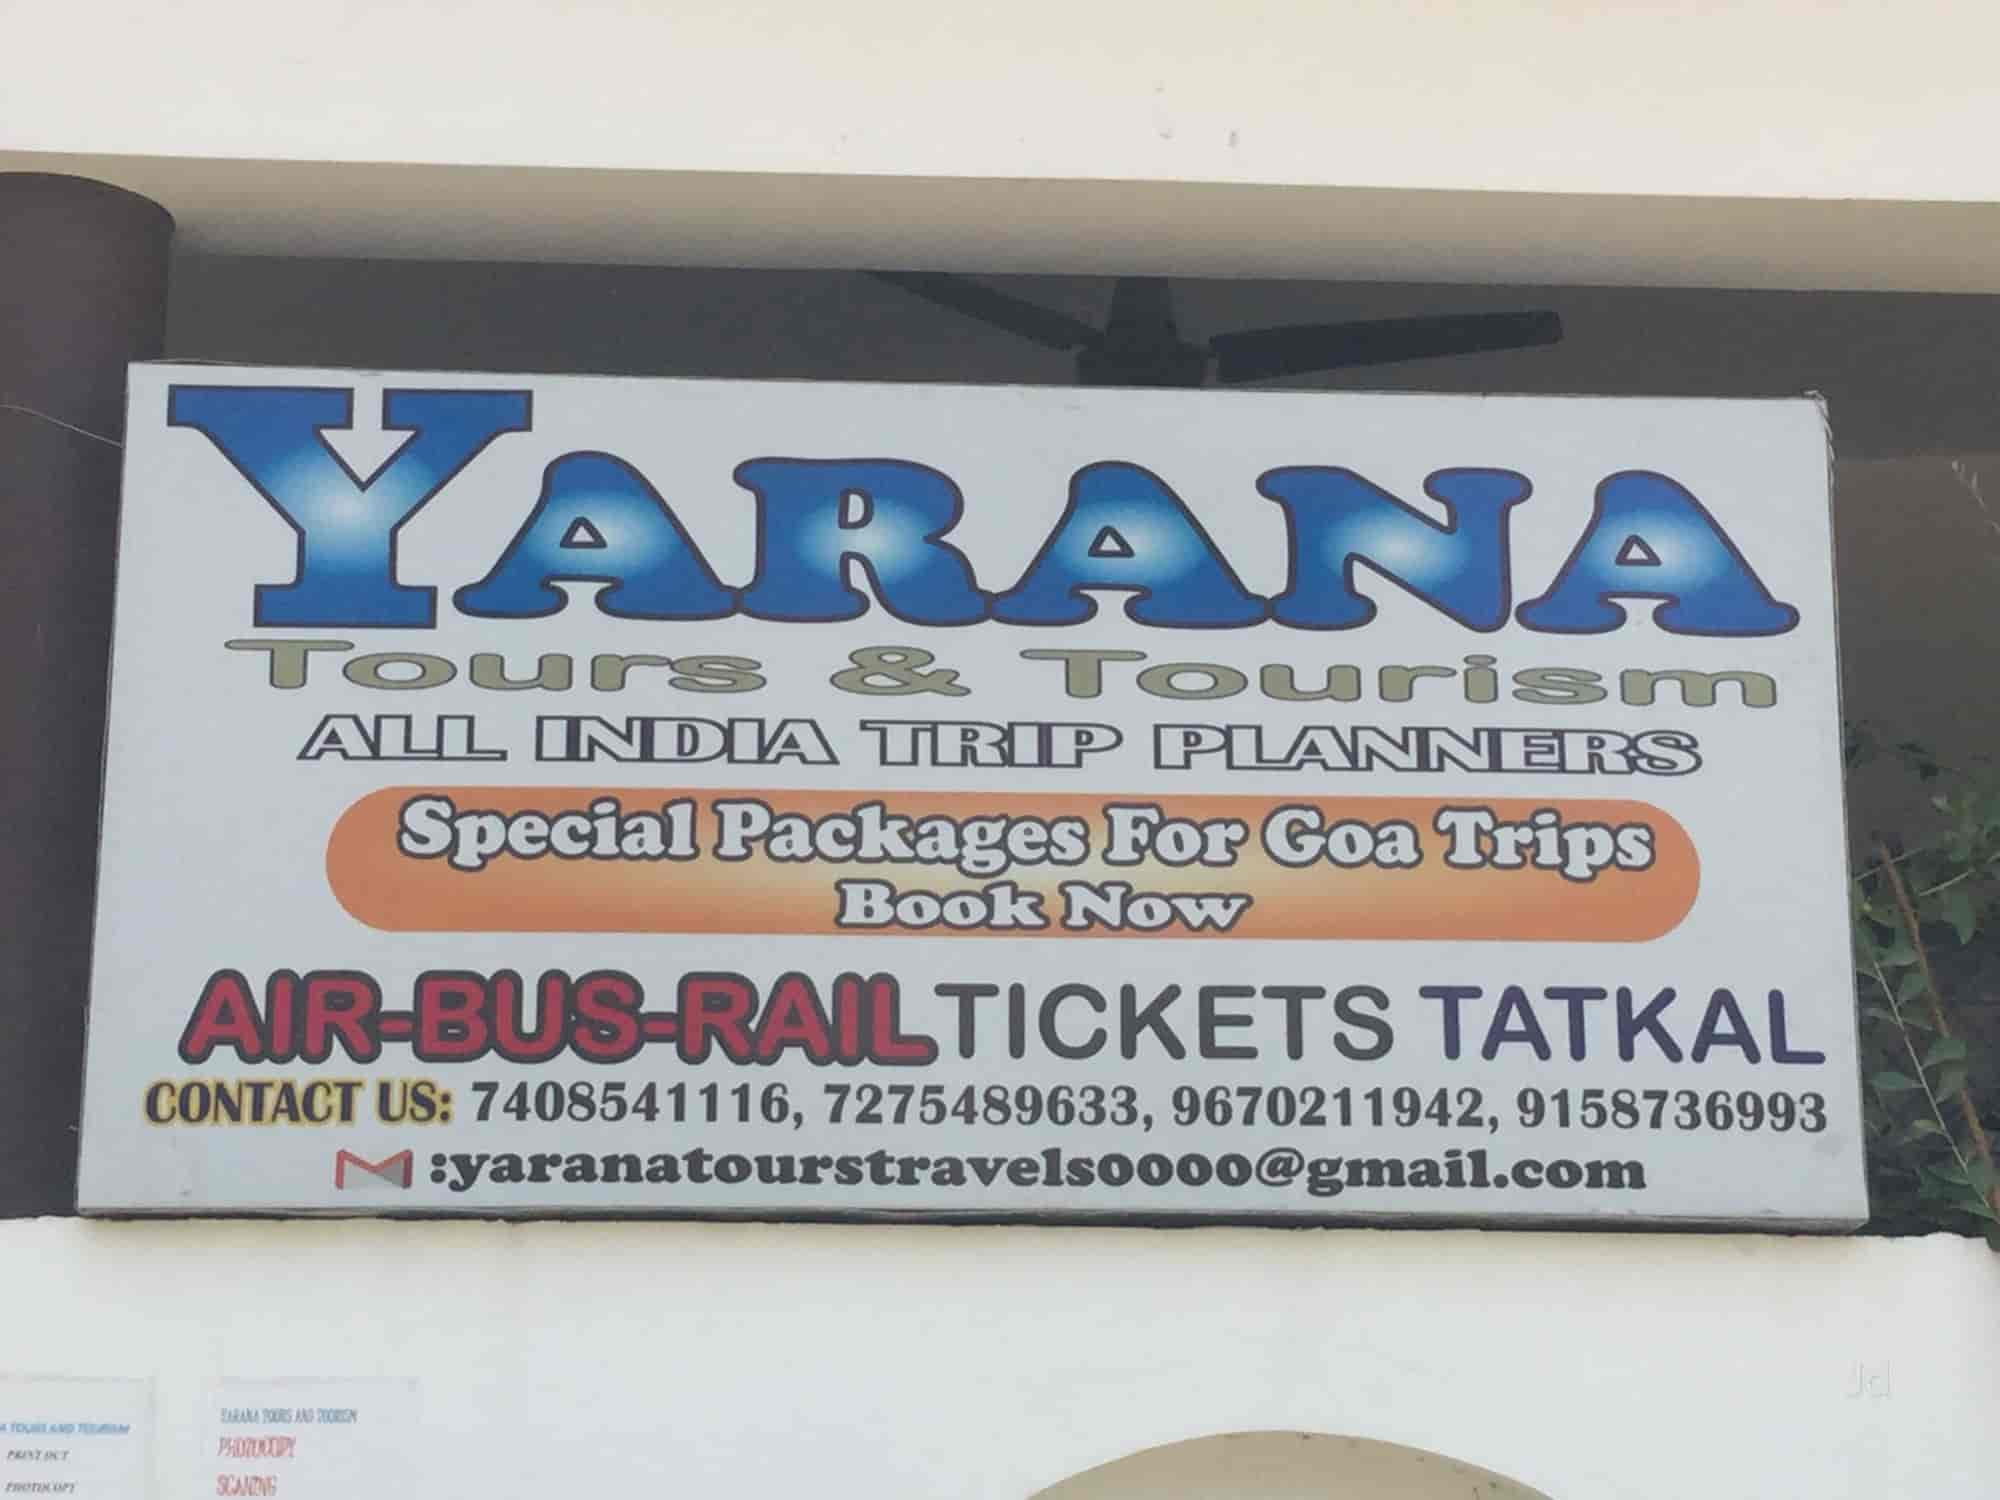 Yarana Tours & Tourism, Aashiyana - Travel Agents in Lucknow